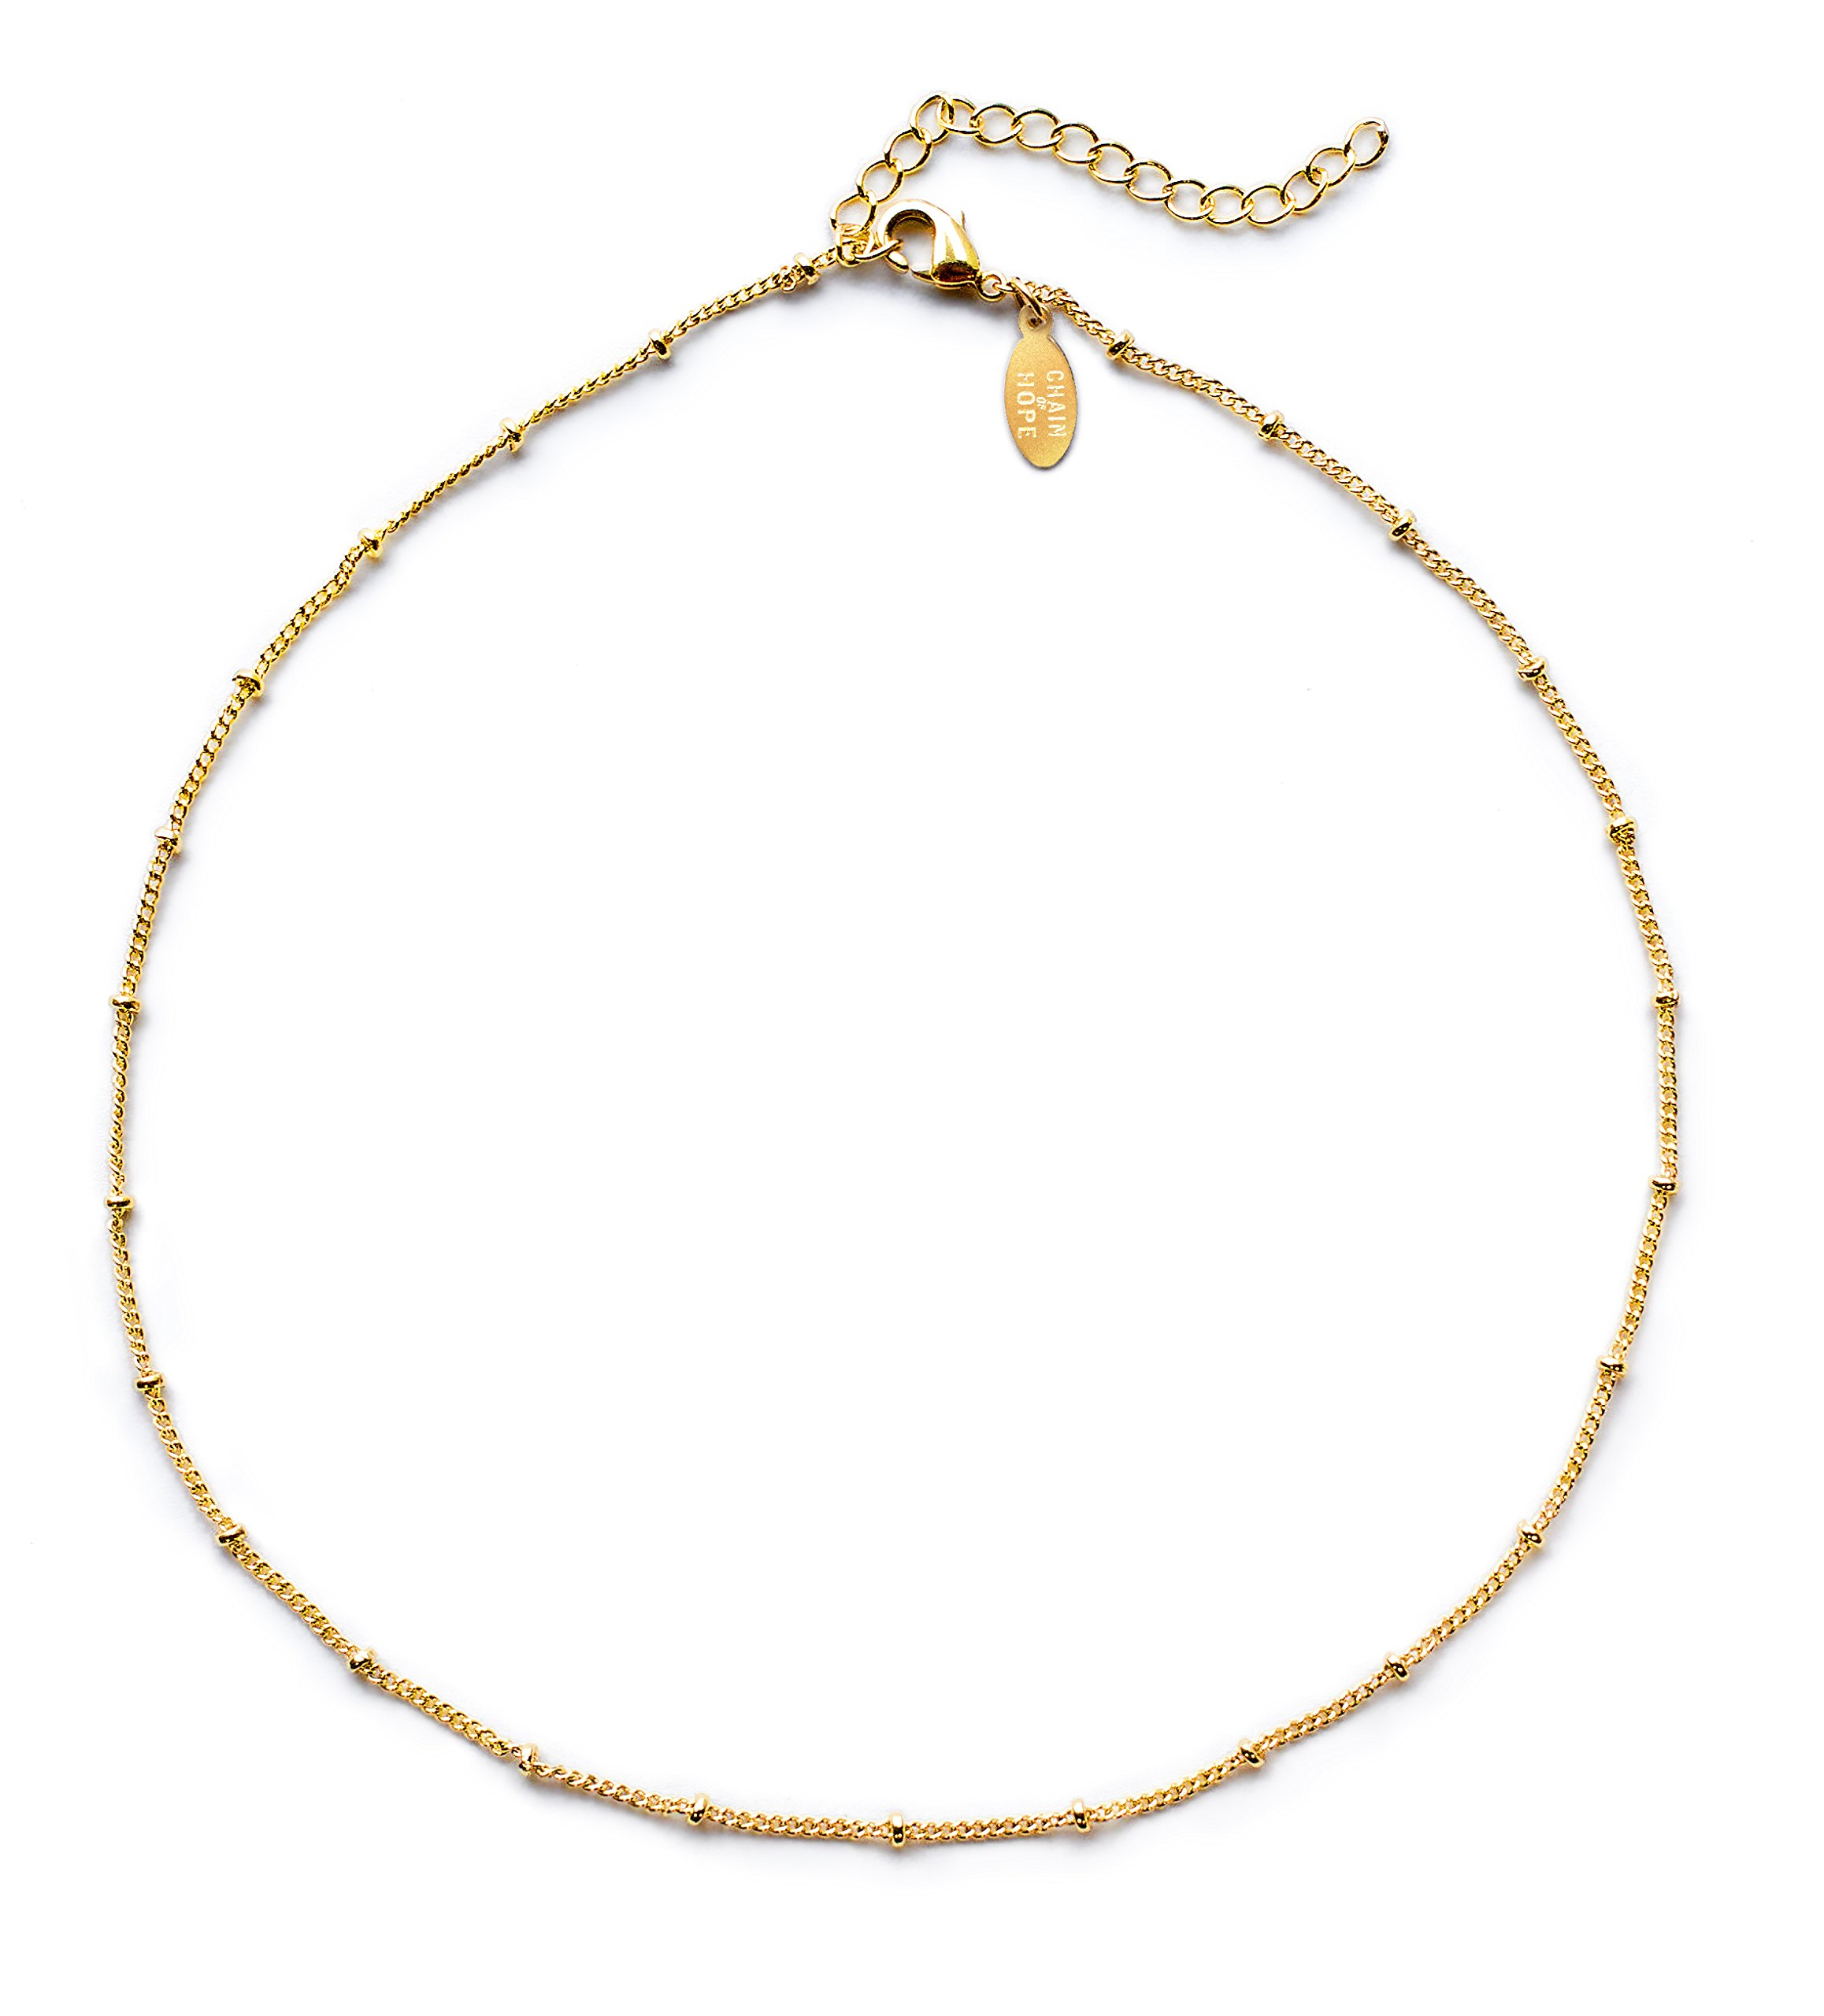 Benevolence LA Choker Necklace 14k Gold Necklace for Women: Dipped Satellite Beaded Curb Ball Chain Chokers 1mm Hypoallergenic